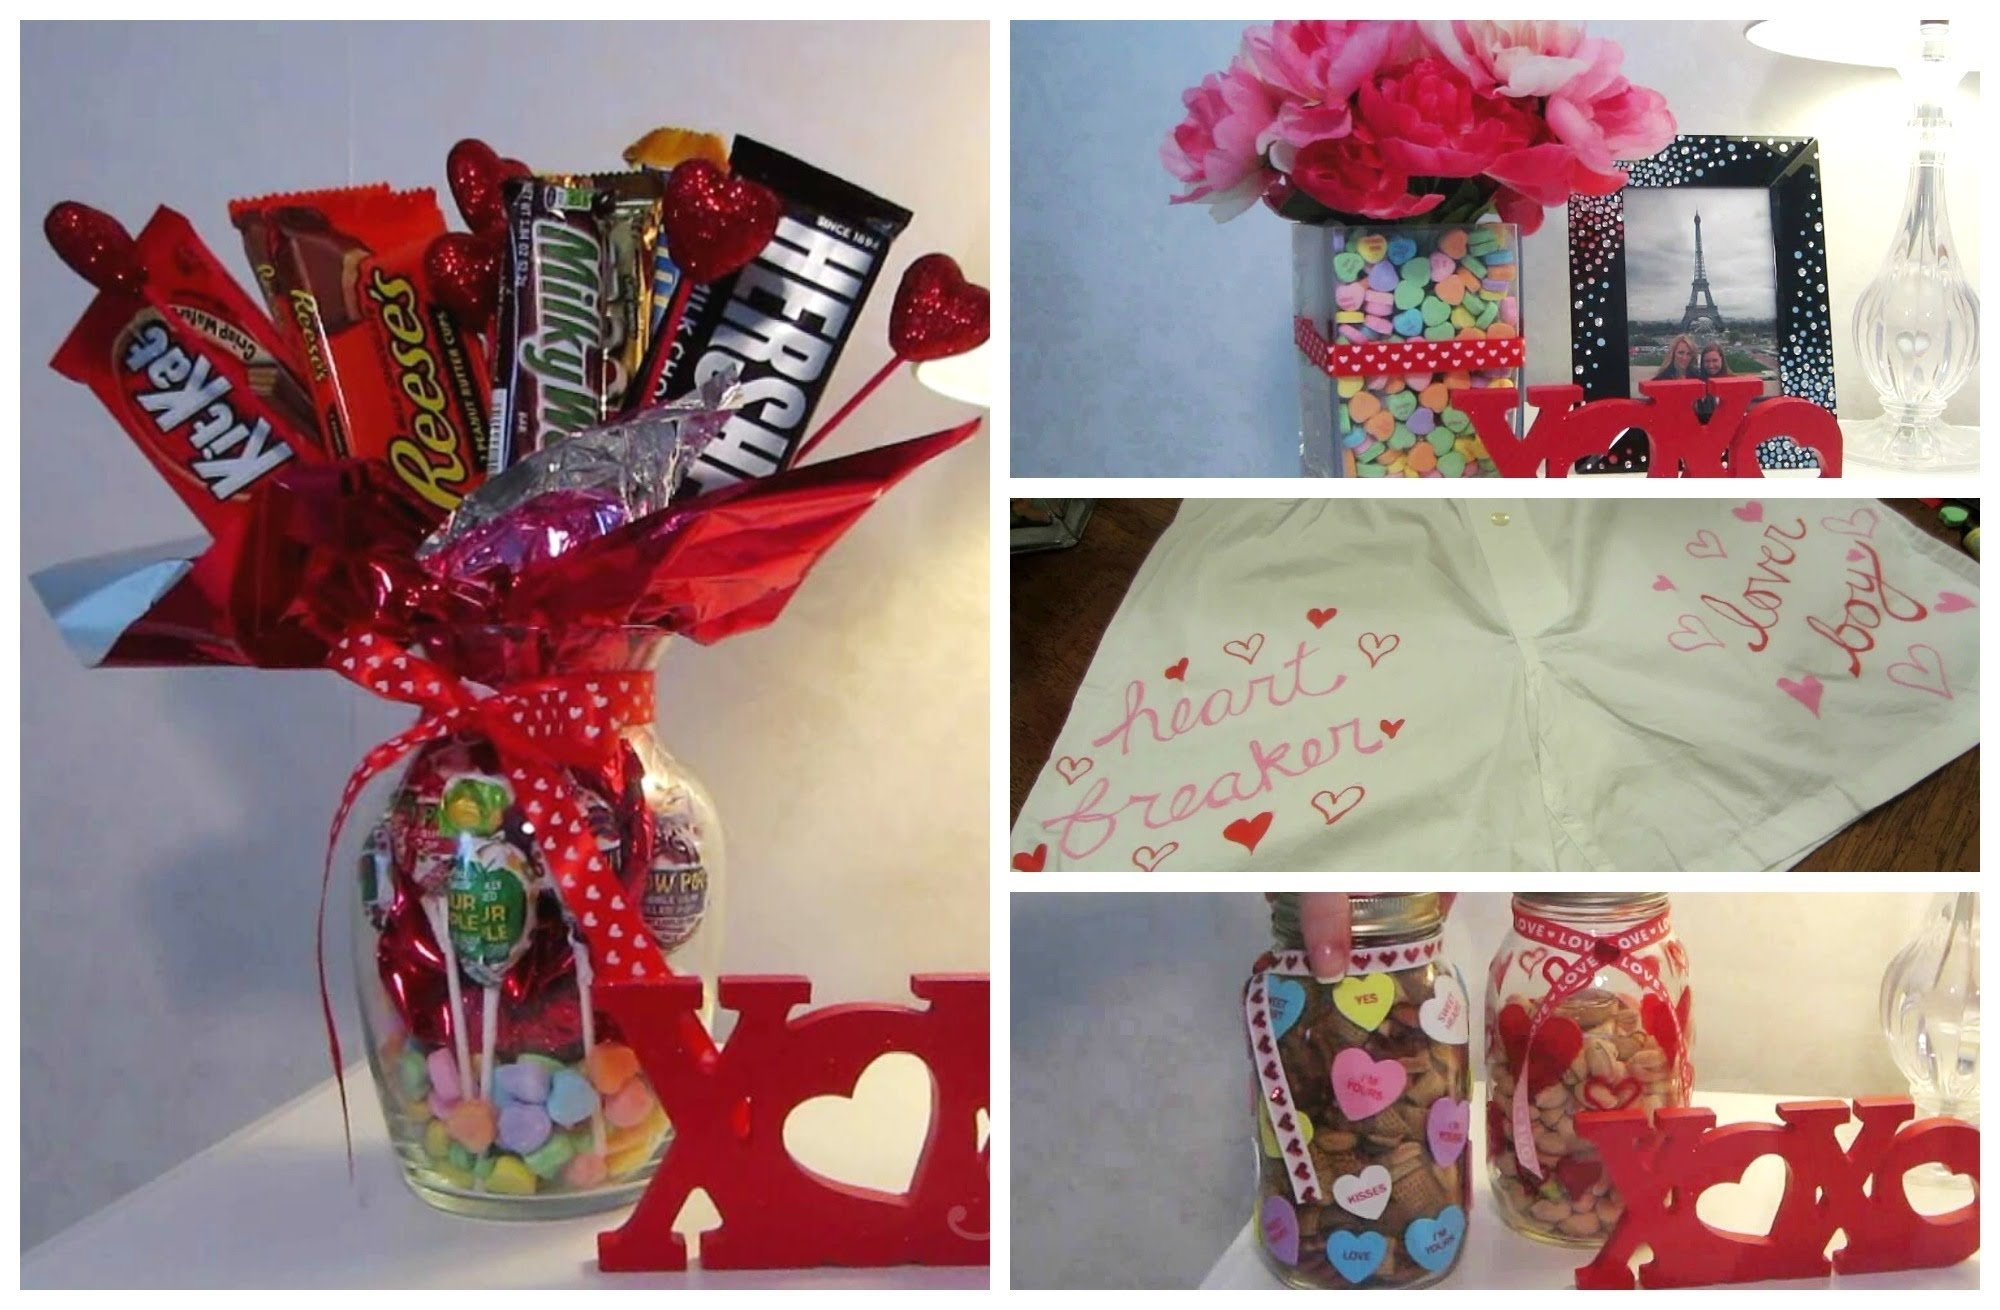 10 Famous Valentines Gifts Ideas For Her cute valentine diy gift ideas youtube 14